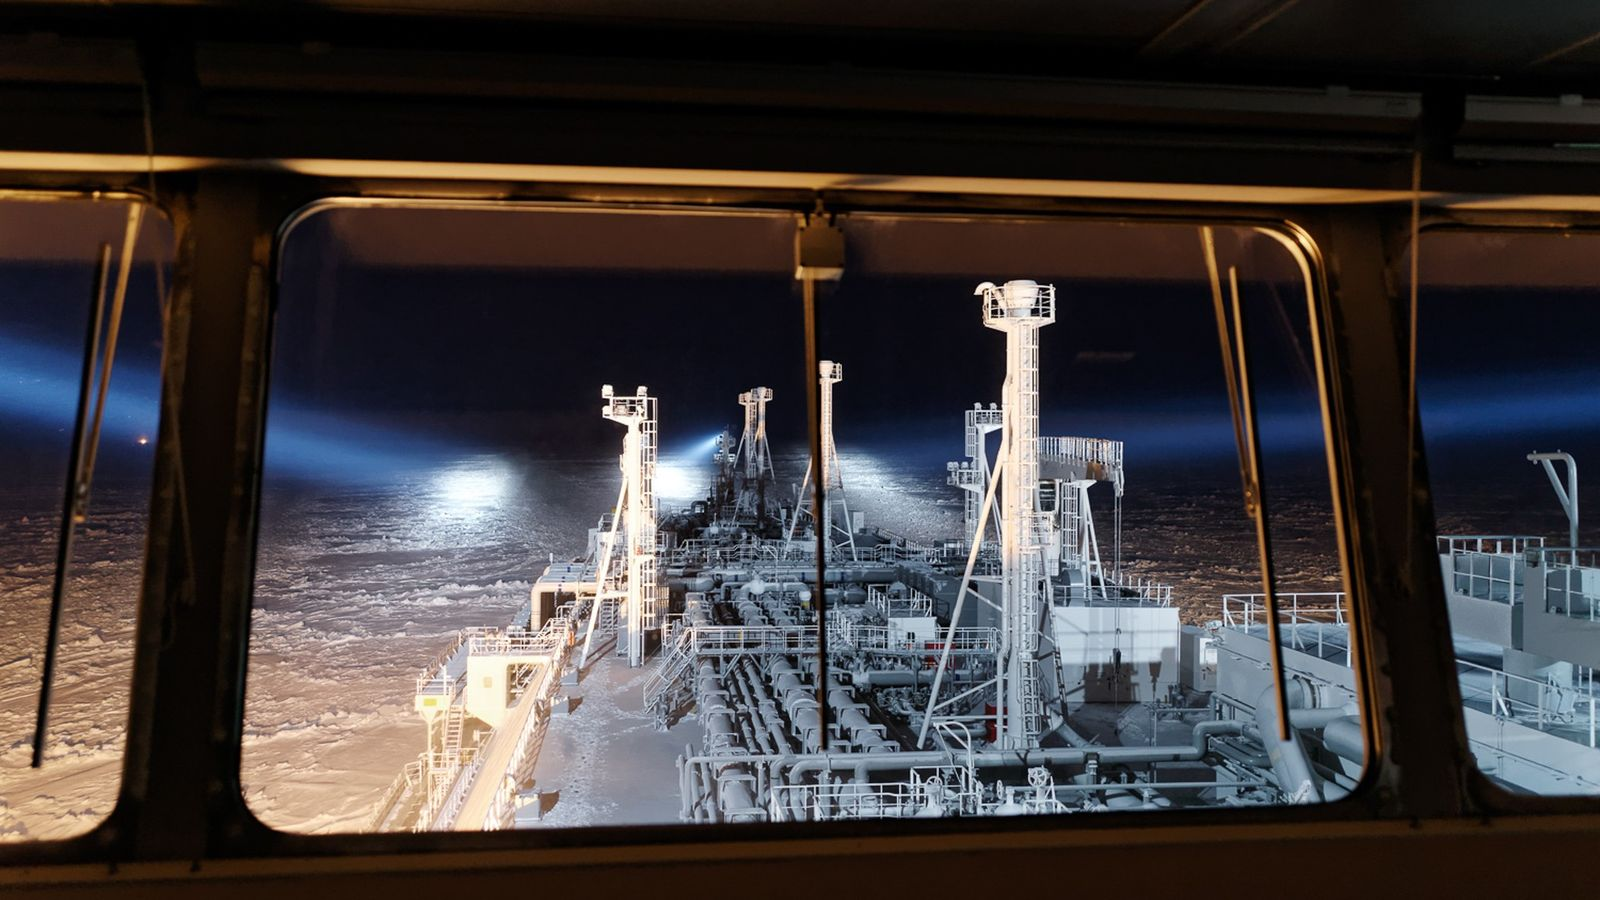 At night in the Kara Sea, powerful searchlights illuminate the ice ahead for the officers on ...